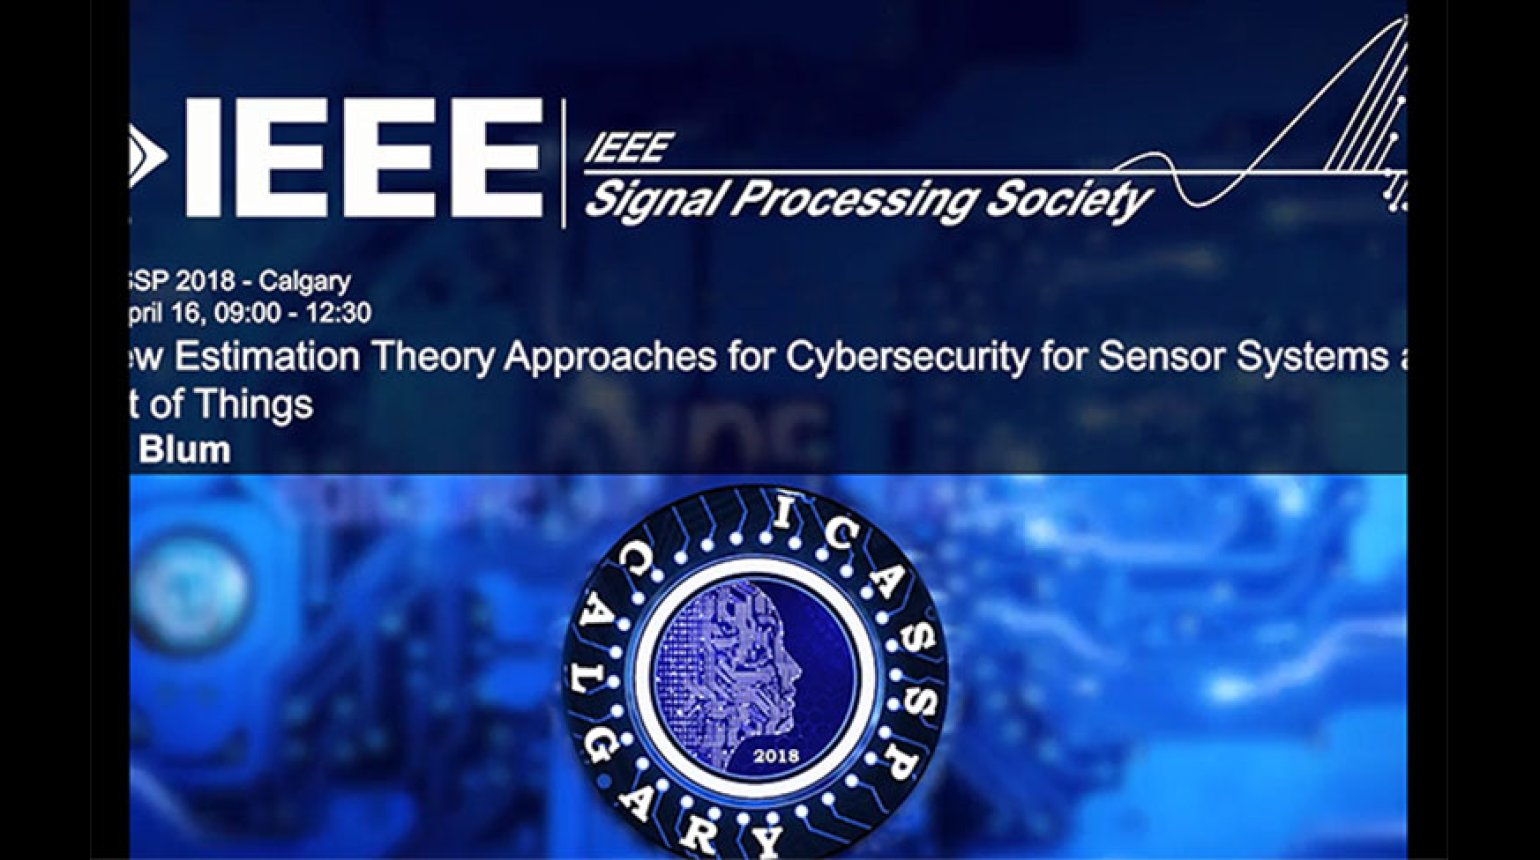 Tutorial 2 - New Estimation Theory Approaches for Cybersecurity for Sensor Systems and the Internet of Things